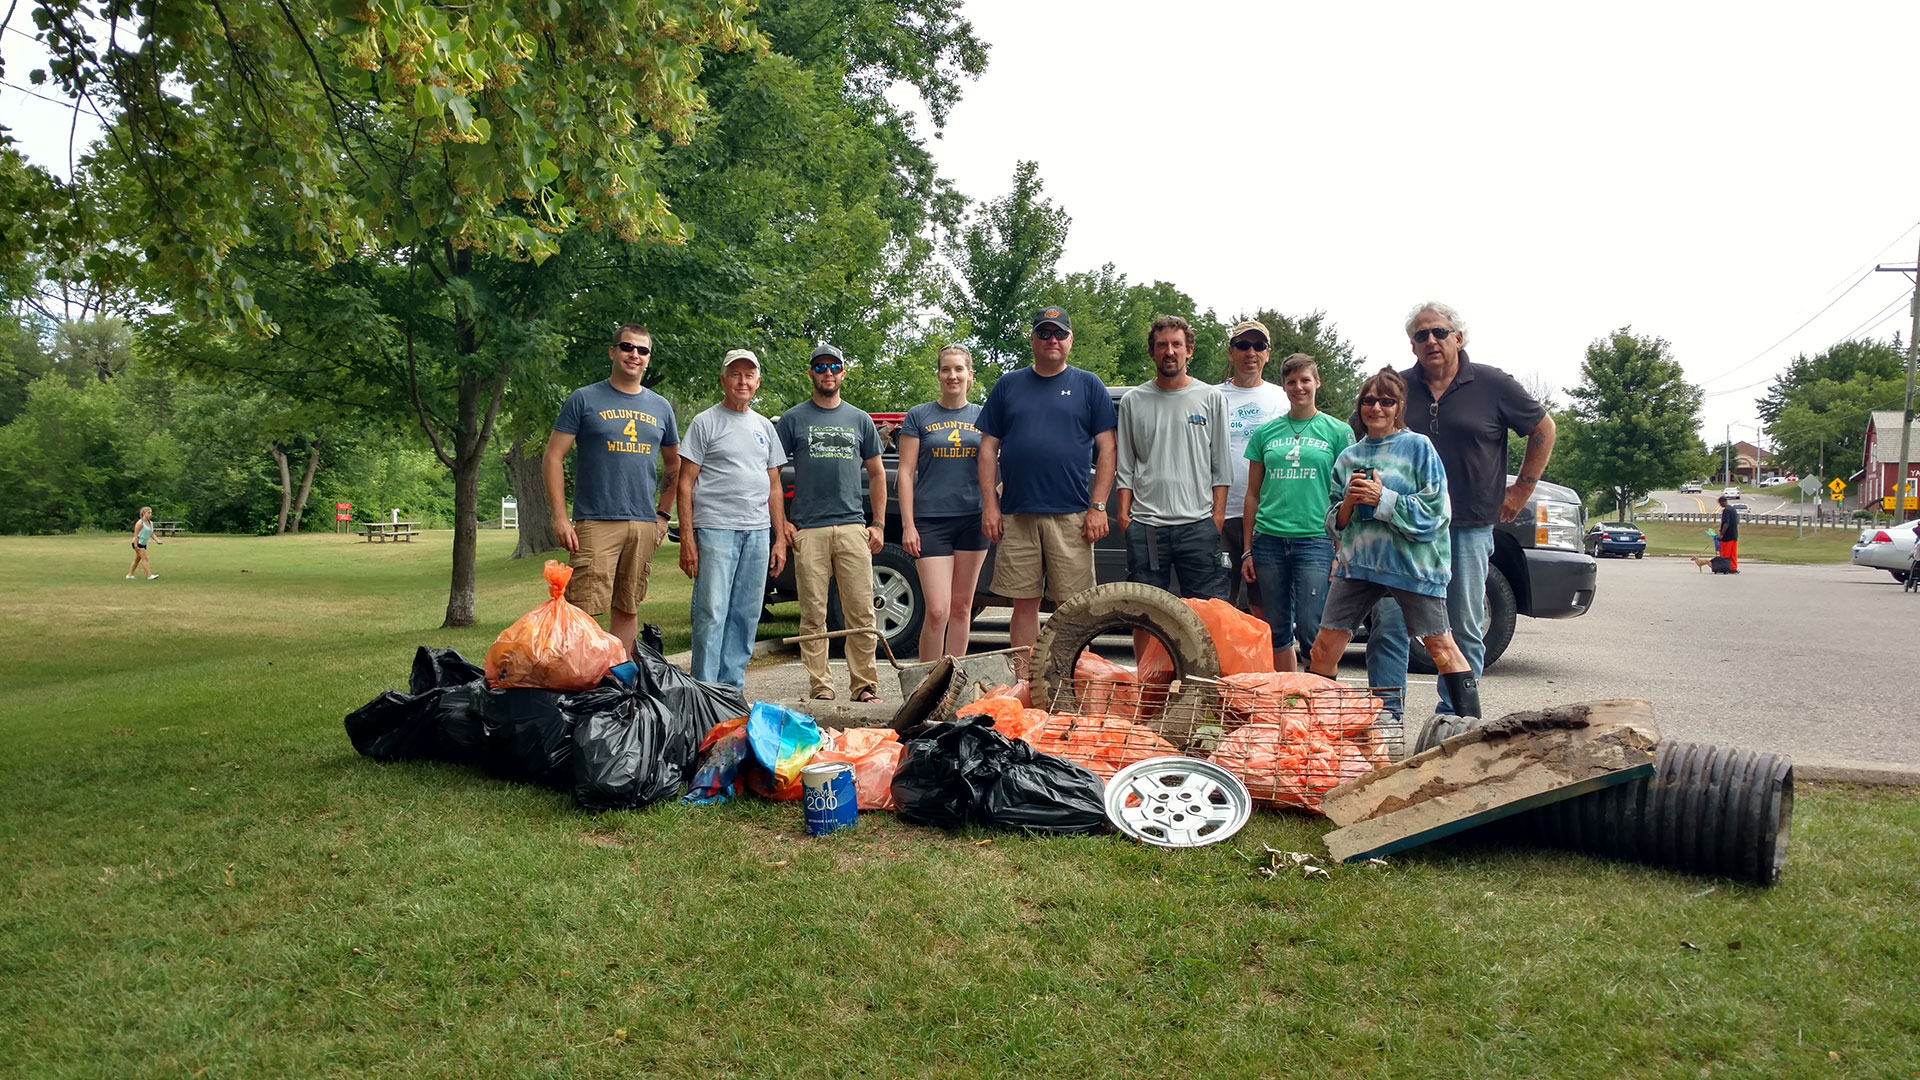 Michigan volunteers work to preserve the outdoors